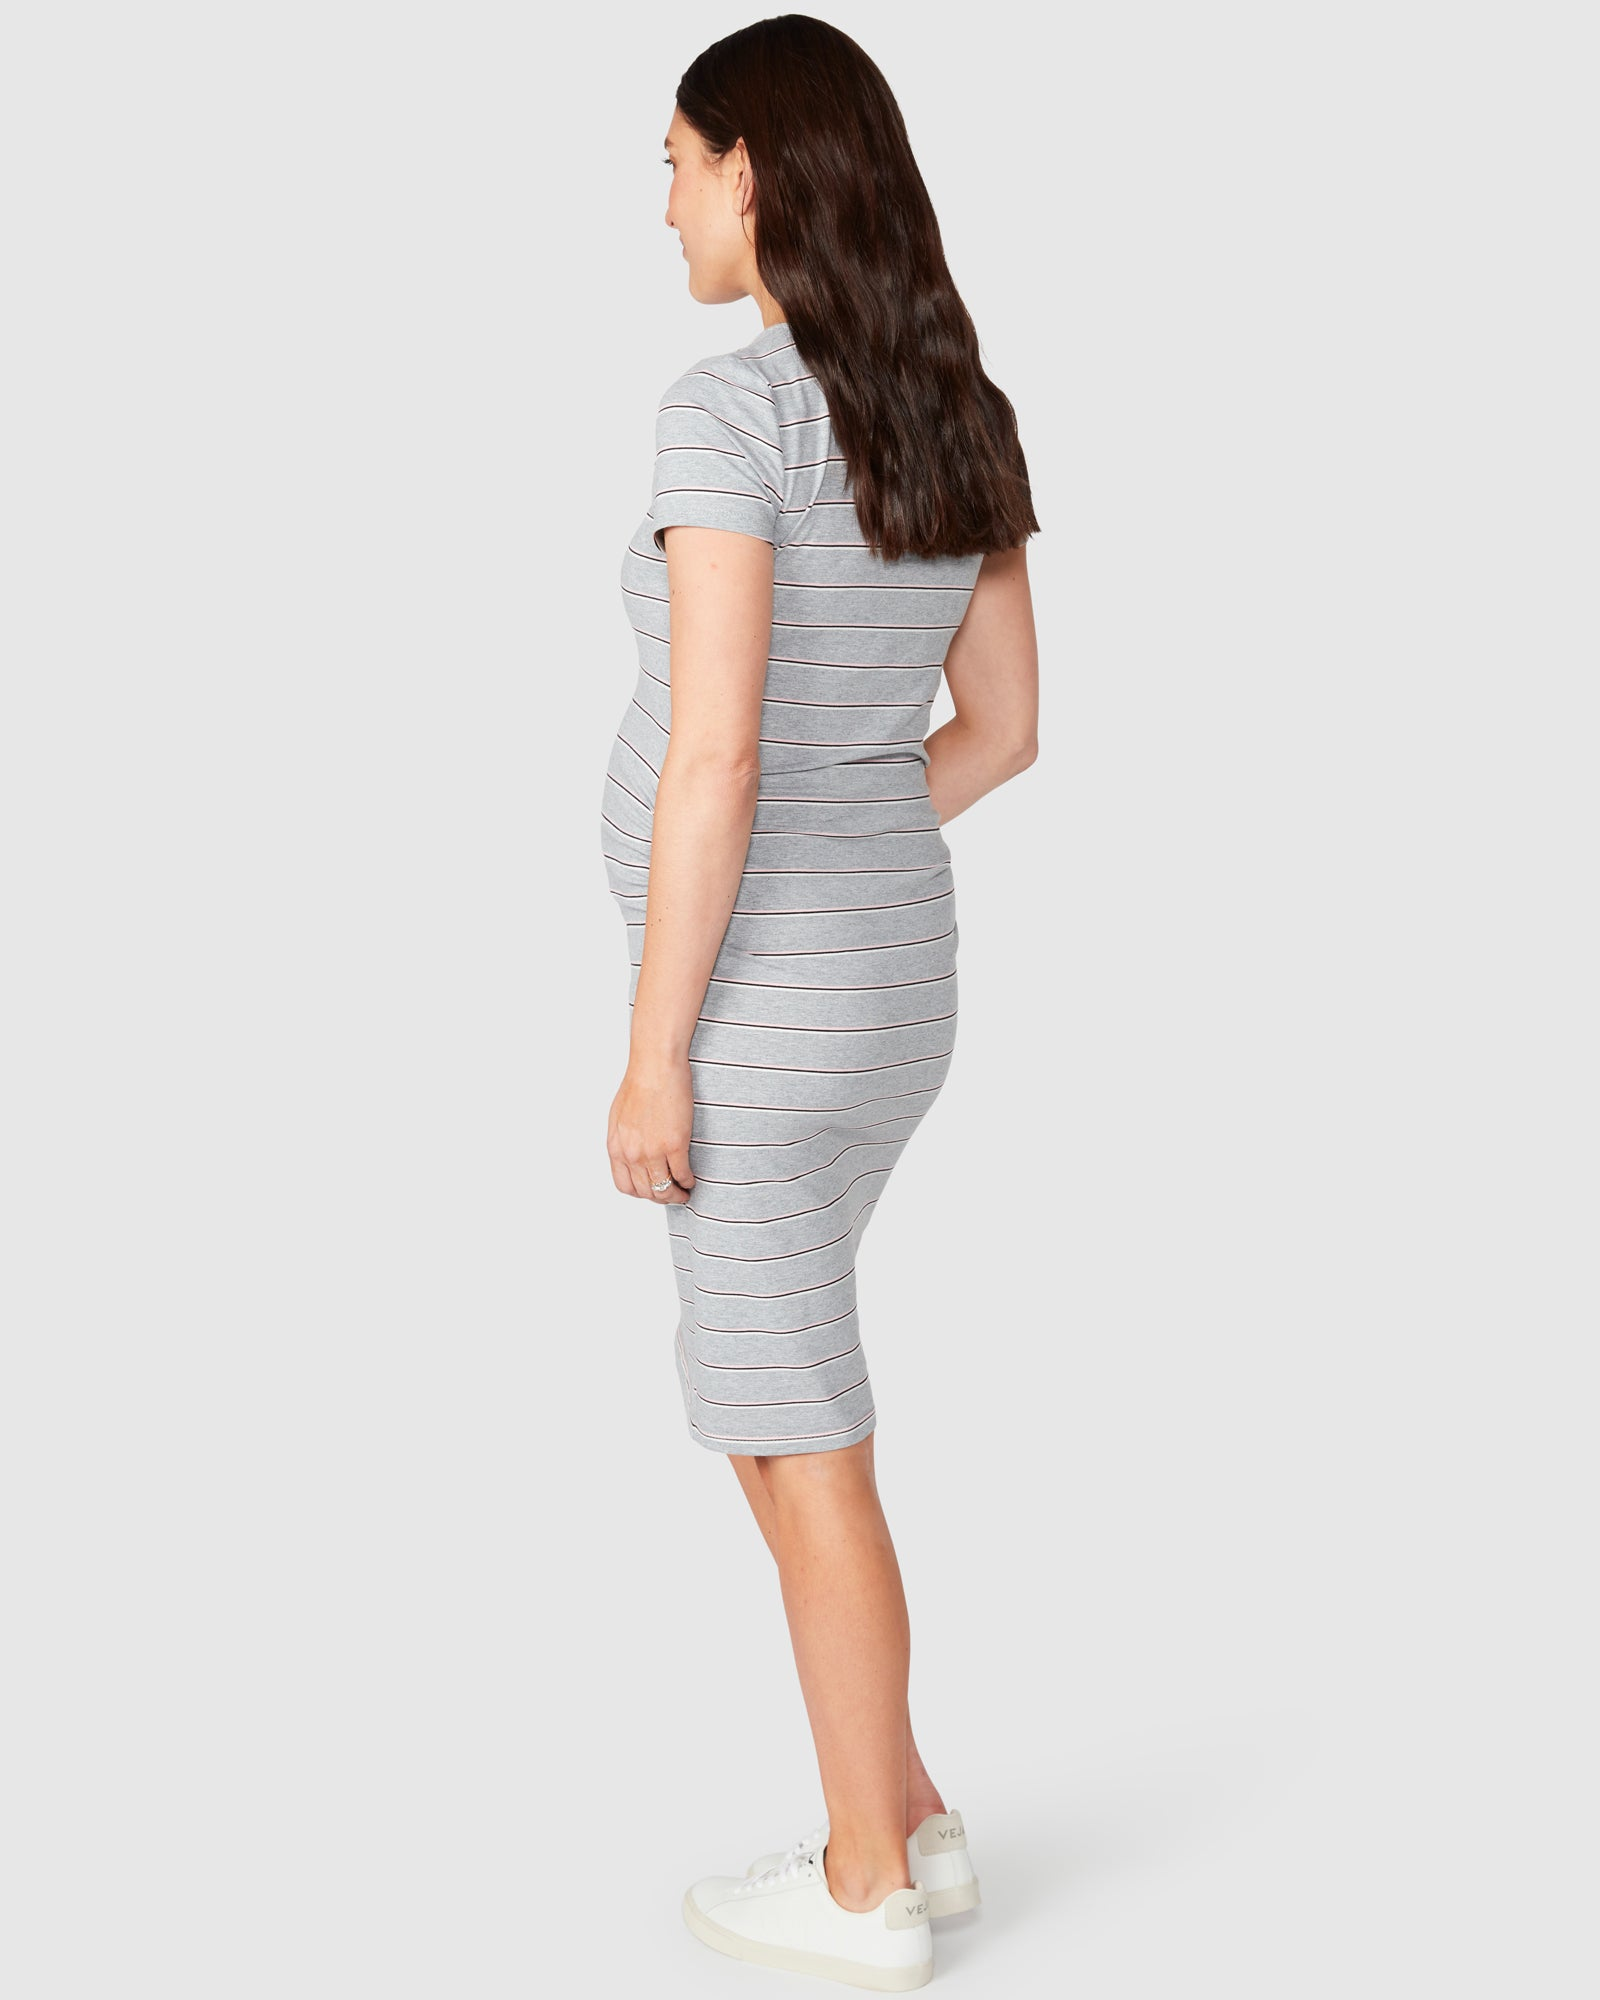 Hattie Nursing Dress